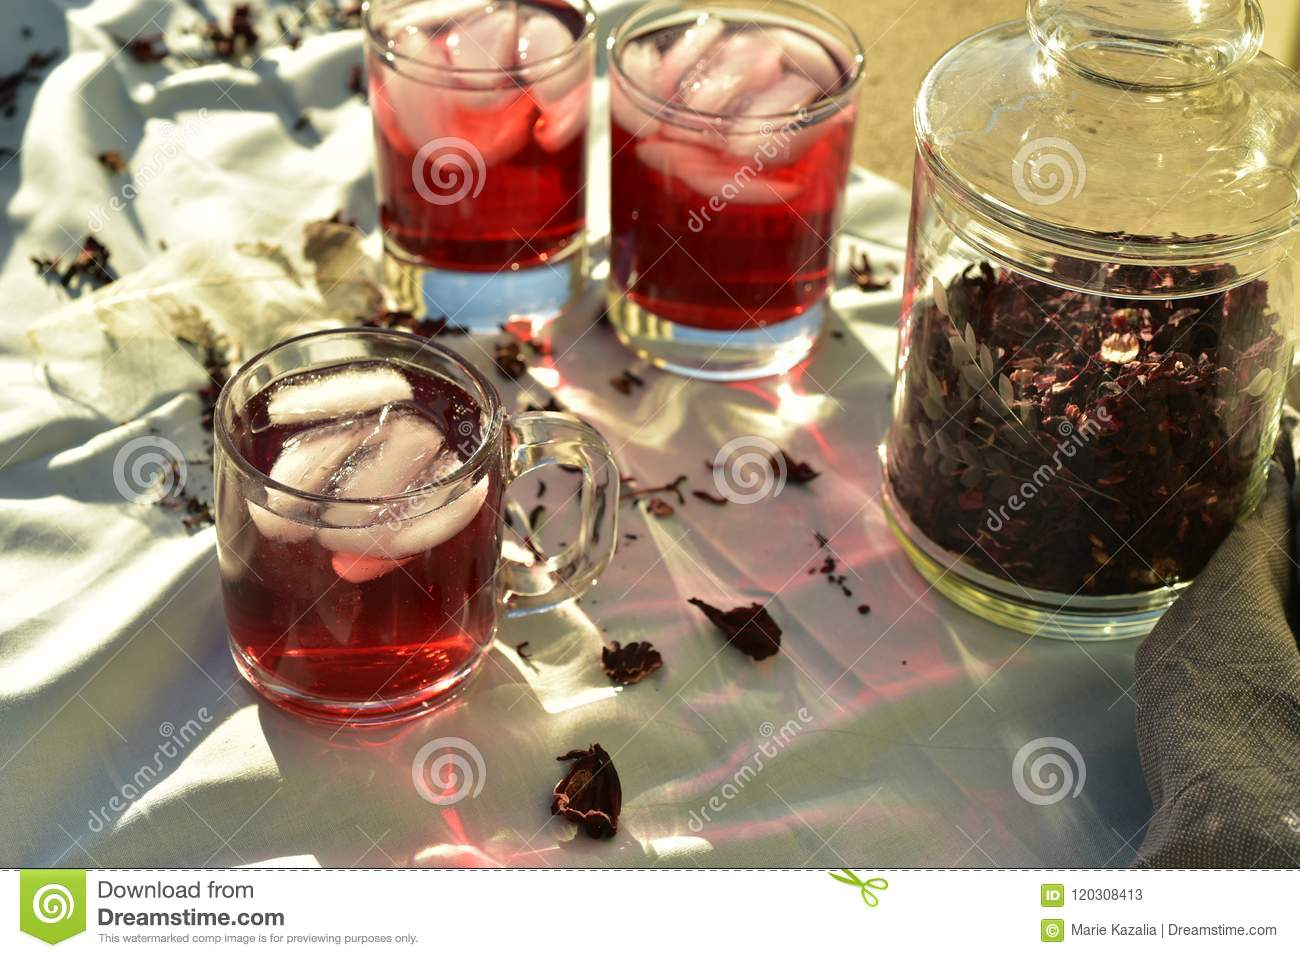 Natural red ice tea made of hibiscus flower petals called fleur de all natural red ice tea made from hibiscus flower petals called fleur de jamaica in mexico izmirmasajfo